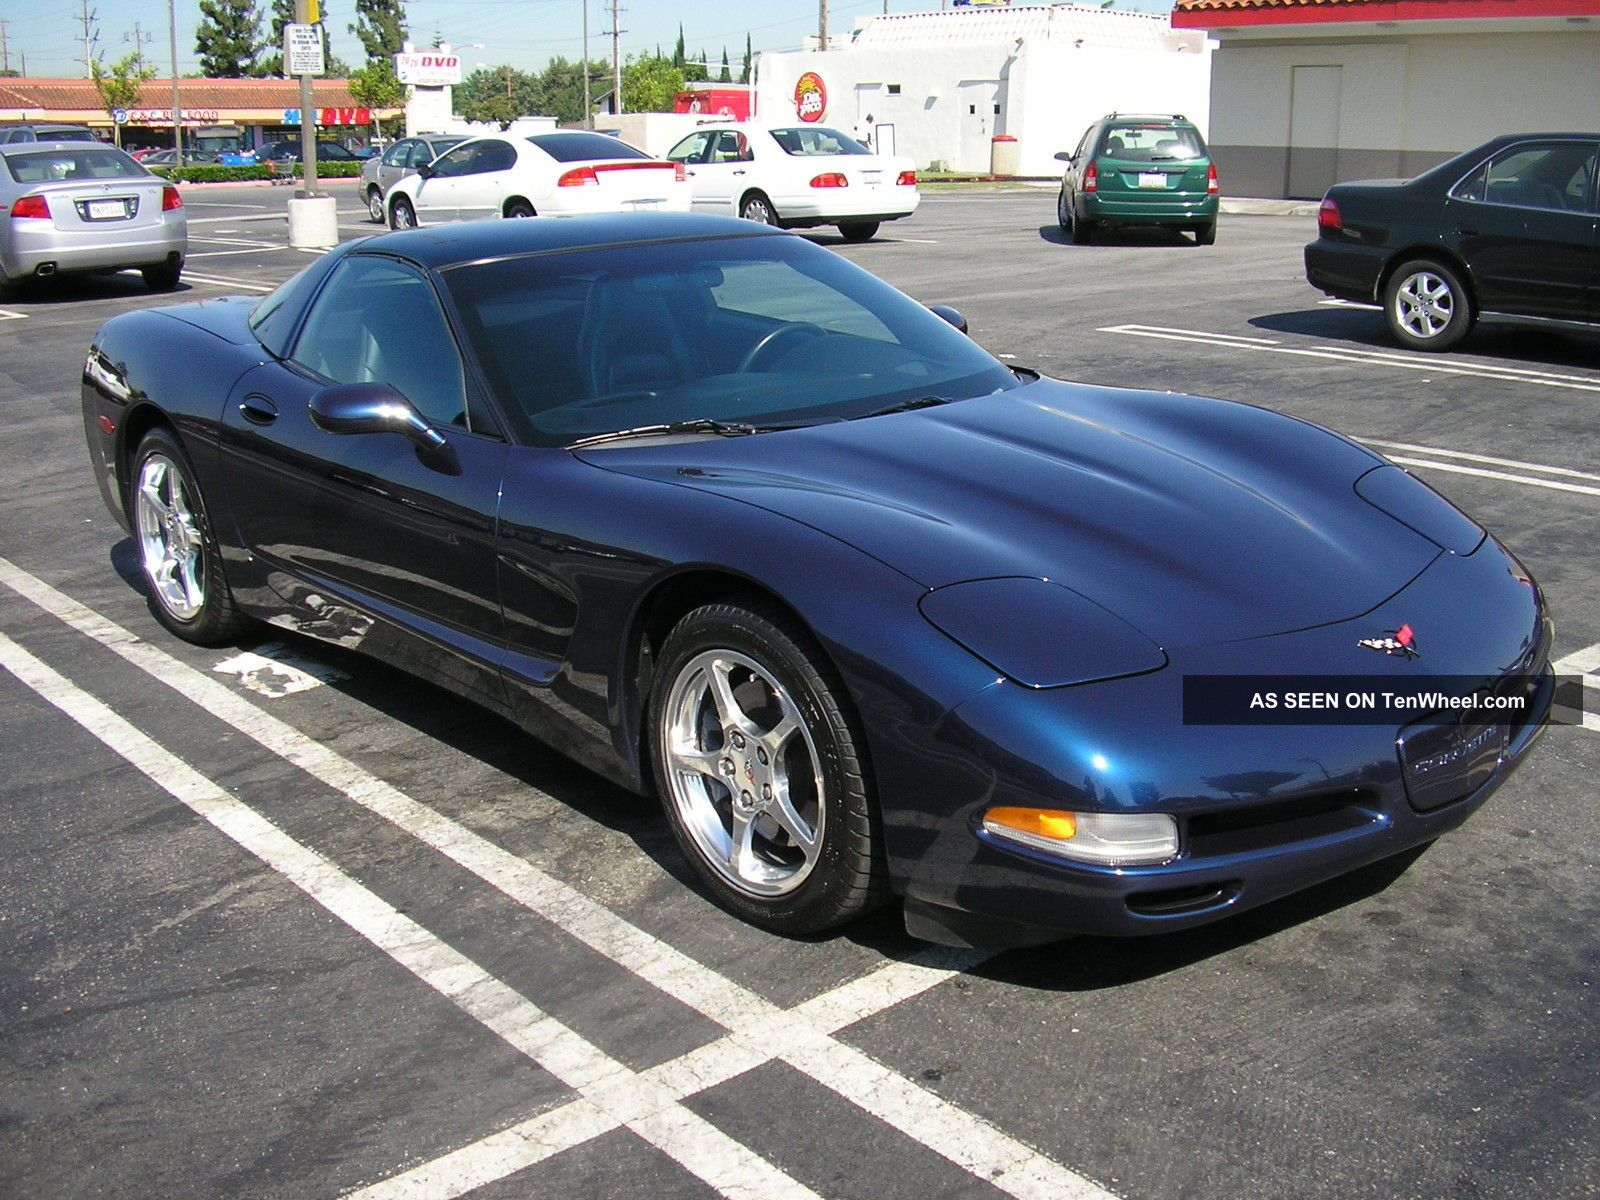 2000 Corvette Coupe, C5, Manual Trans, Heads Up Display